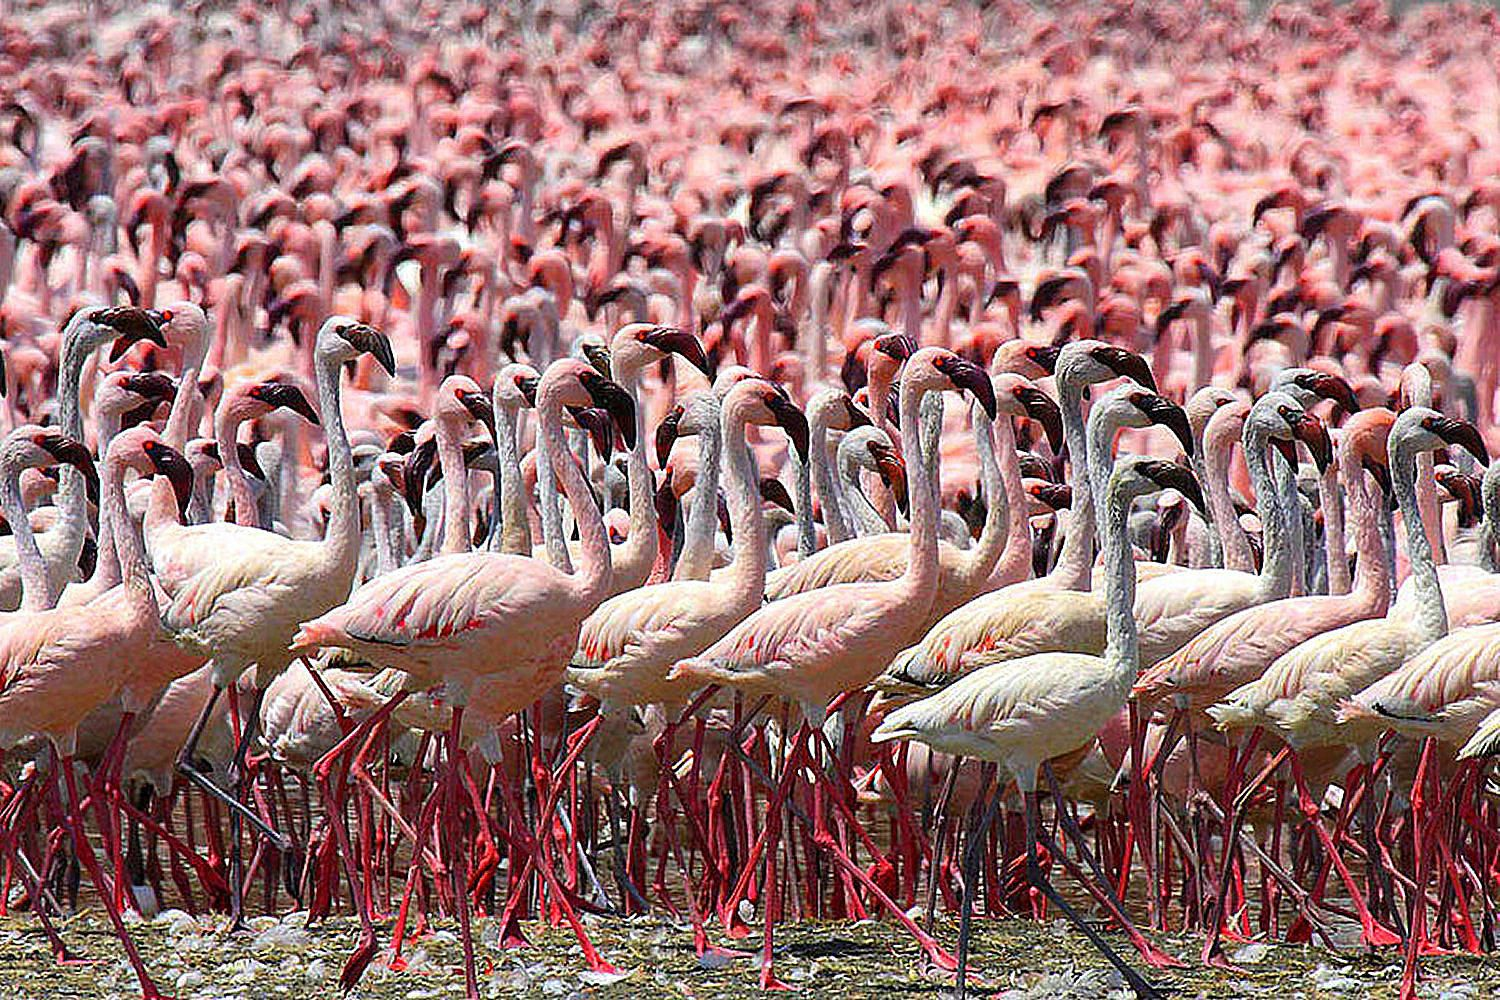 Birding Travel To See Flamingos